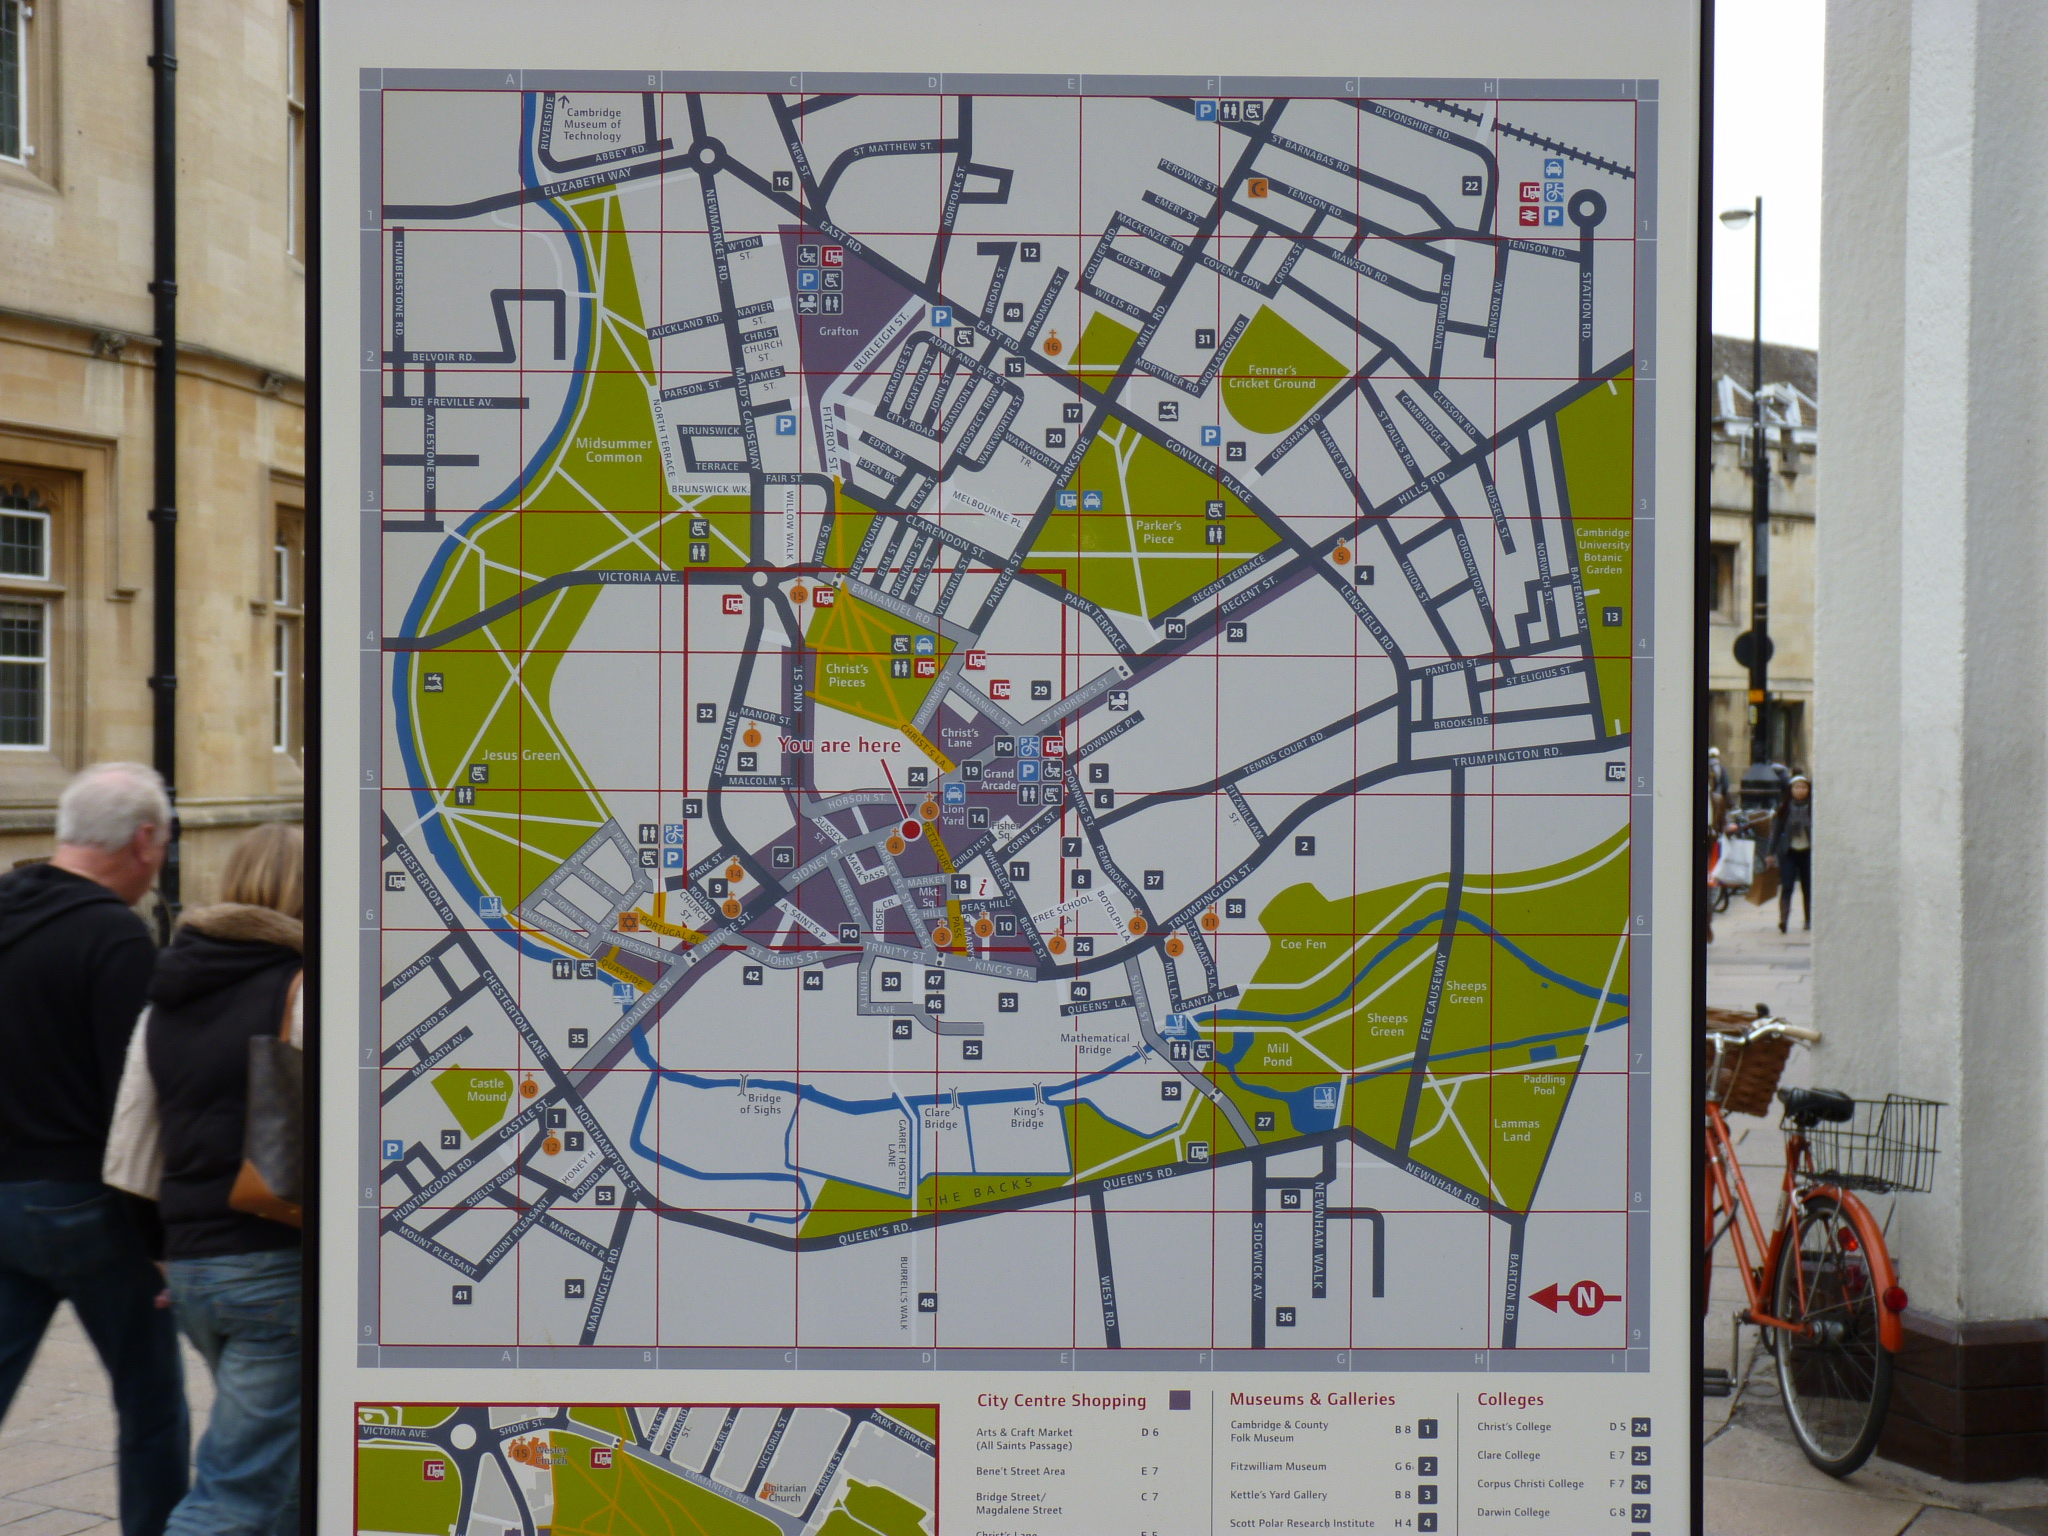 Cambridge Way Finding Map, Cavendish Square, city centre